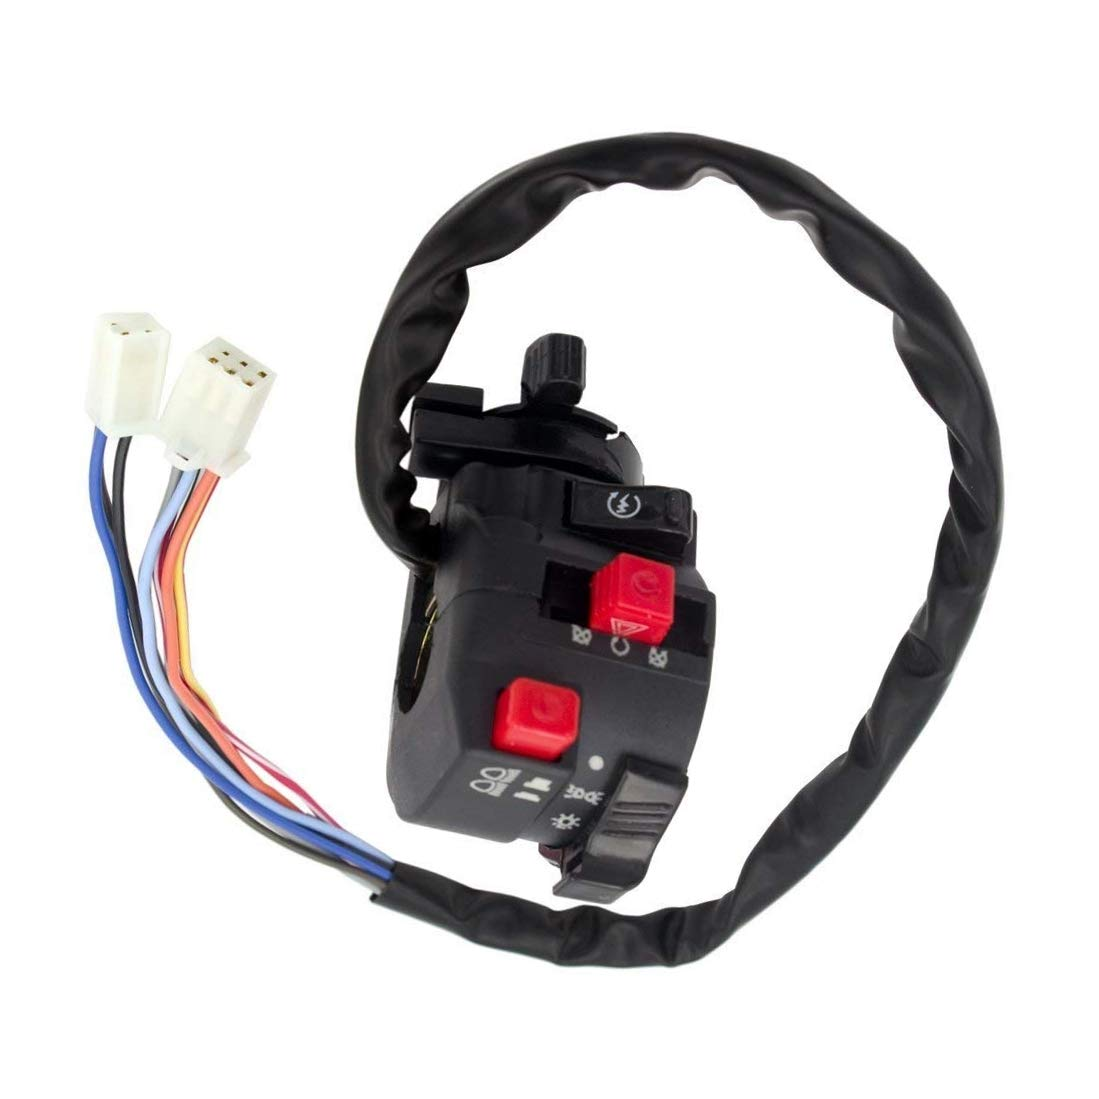 Minireen 5-Function 9 wire Chinese ATV Left Switch Assembly Kill Start Light Choke Switch for 150cc 200cc 250cc 300cc ATVs